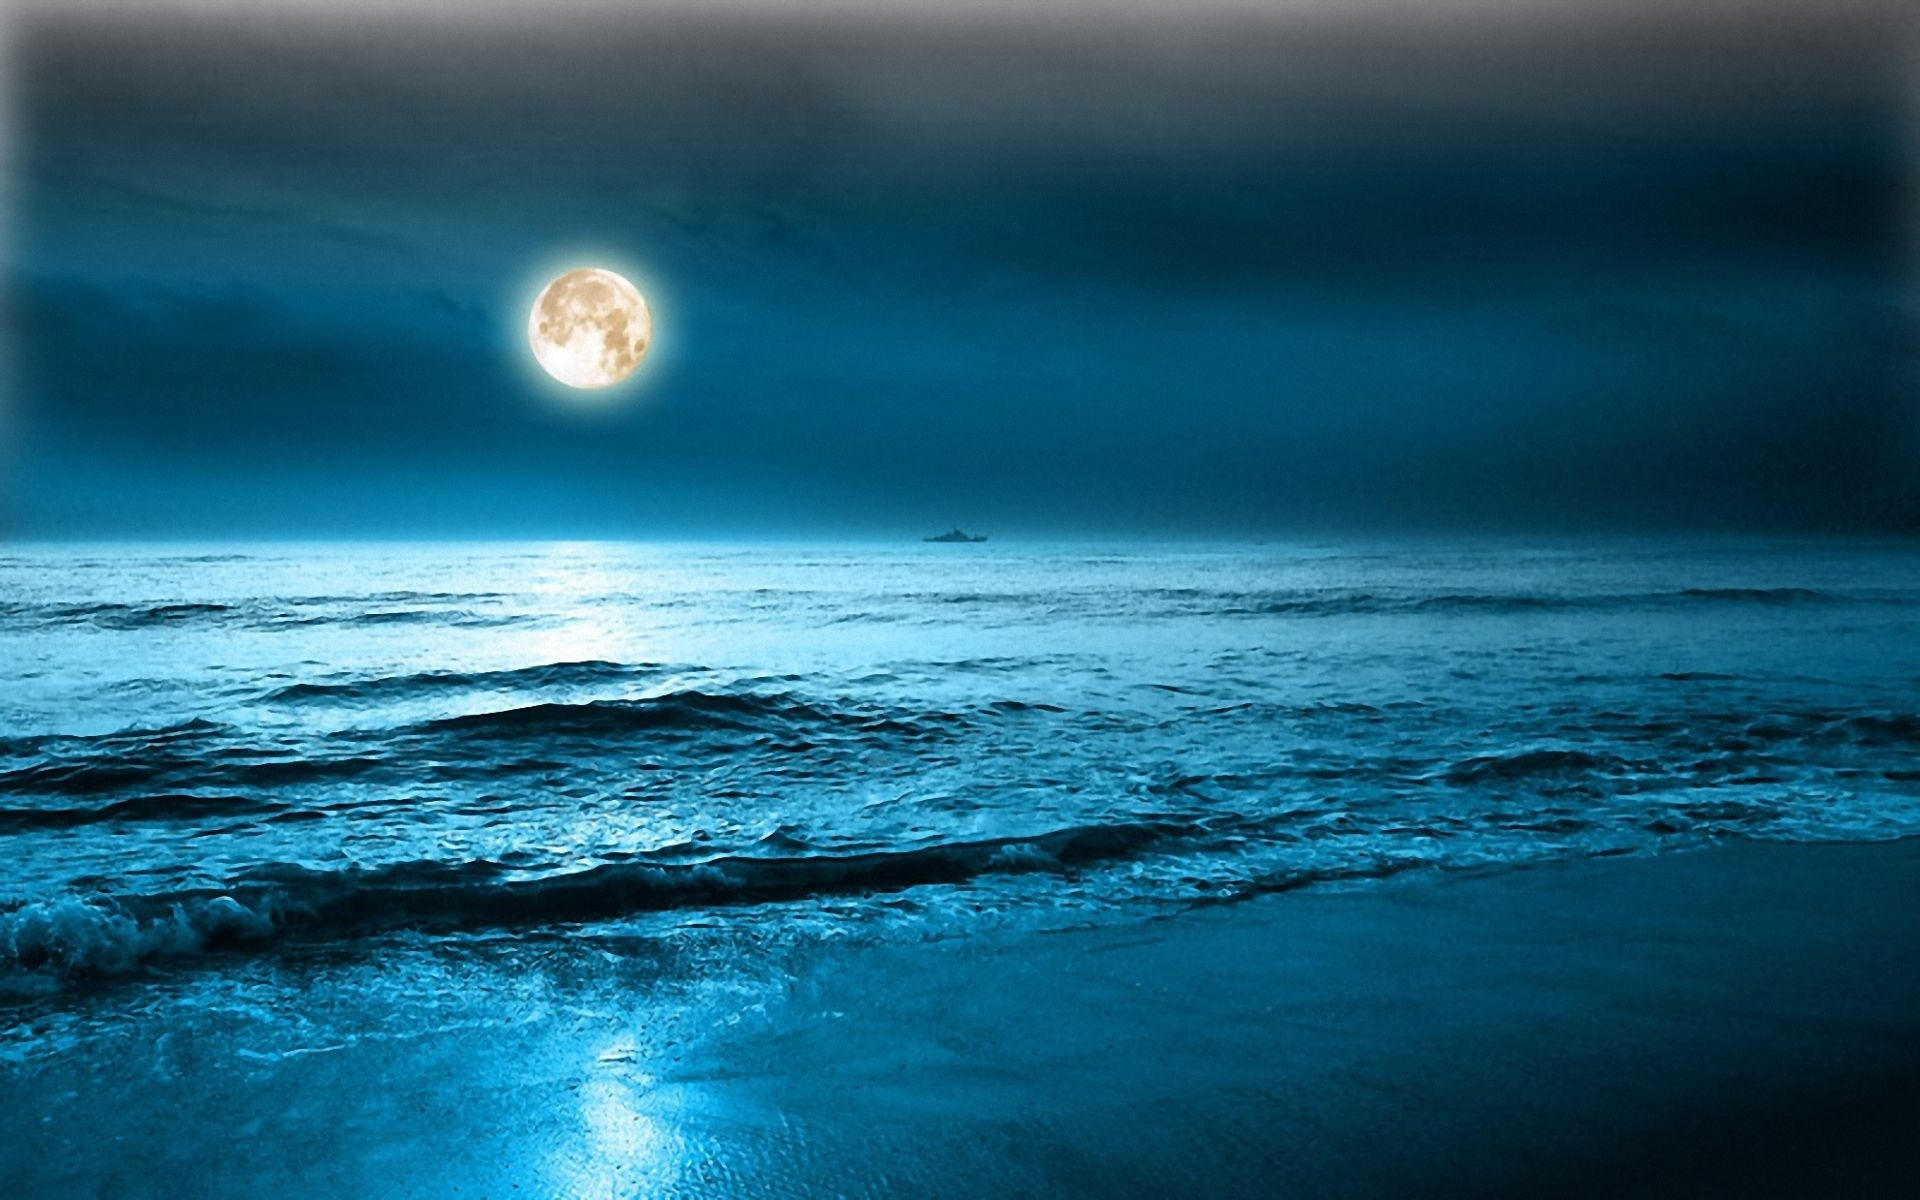 Moon Night Wallpaper HD Images One HD Wallpaper Pictures 1920x1200